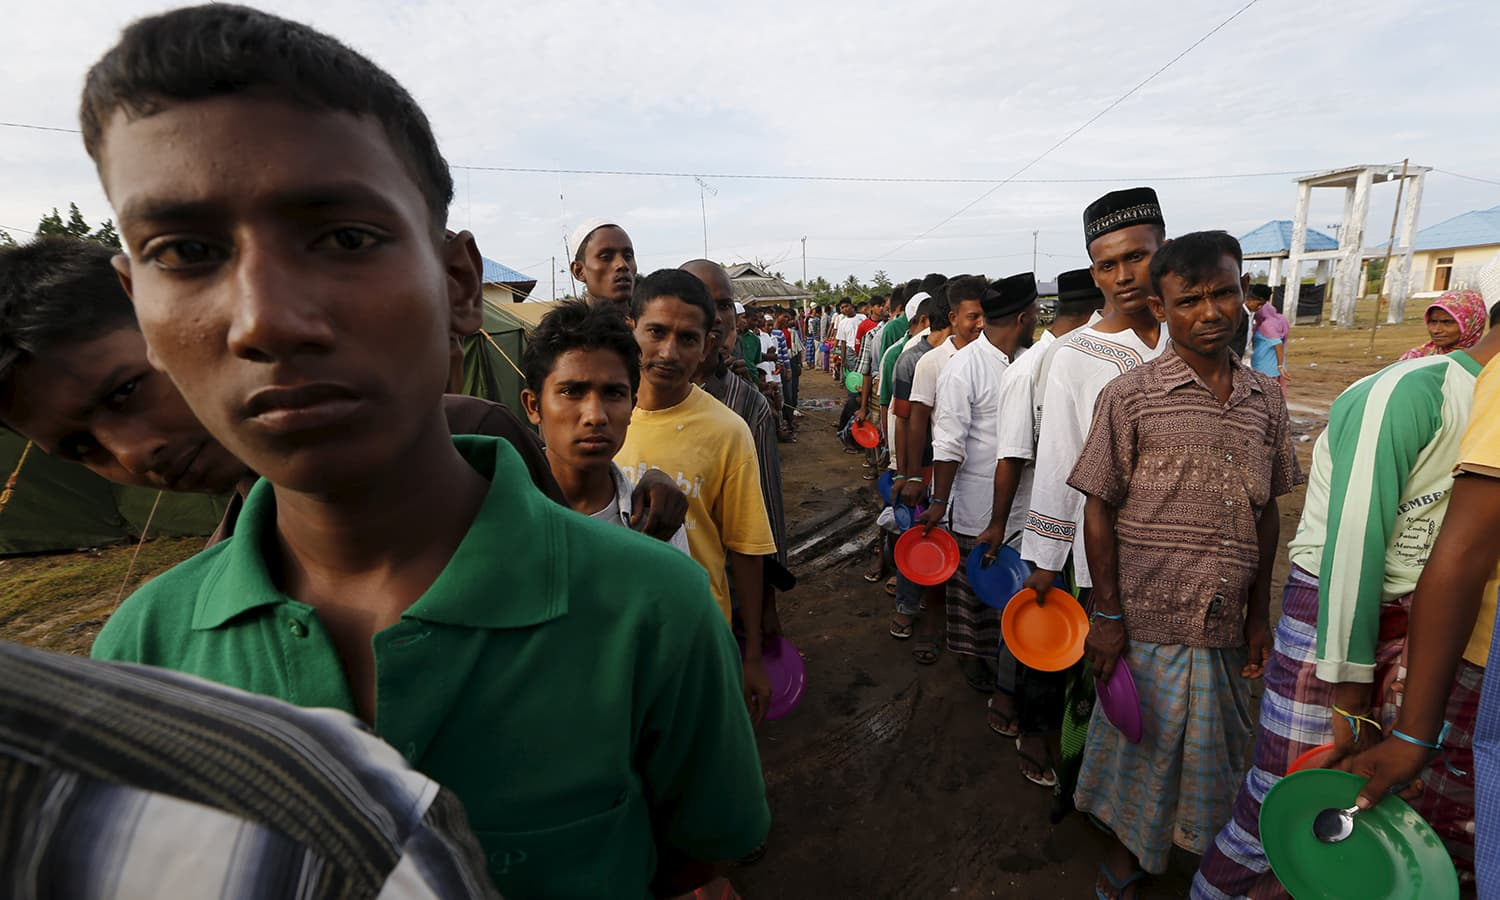 Rohingya migrants who arrived in Indonesia by boat queue for breakfast inside a temporary compound for refugee at Kuala Cangkoi village in Lhoksukon.